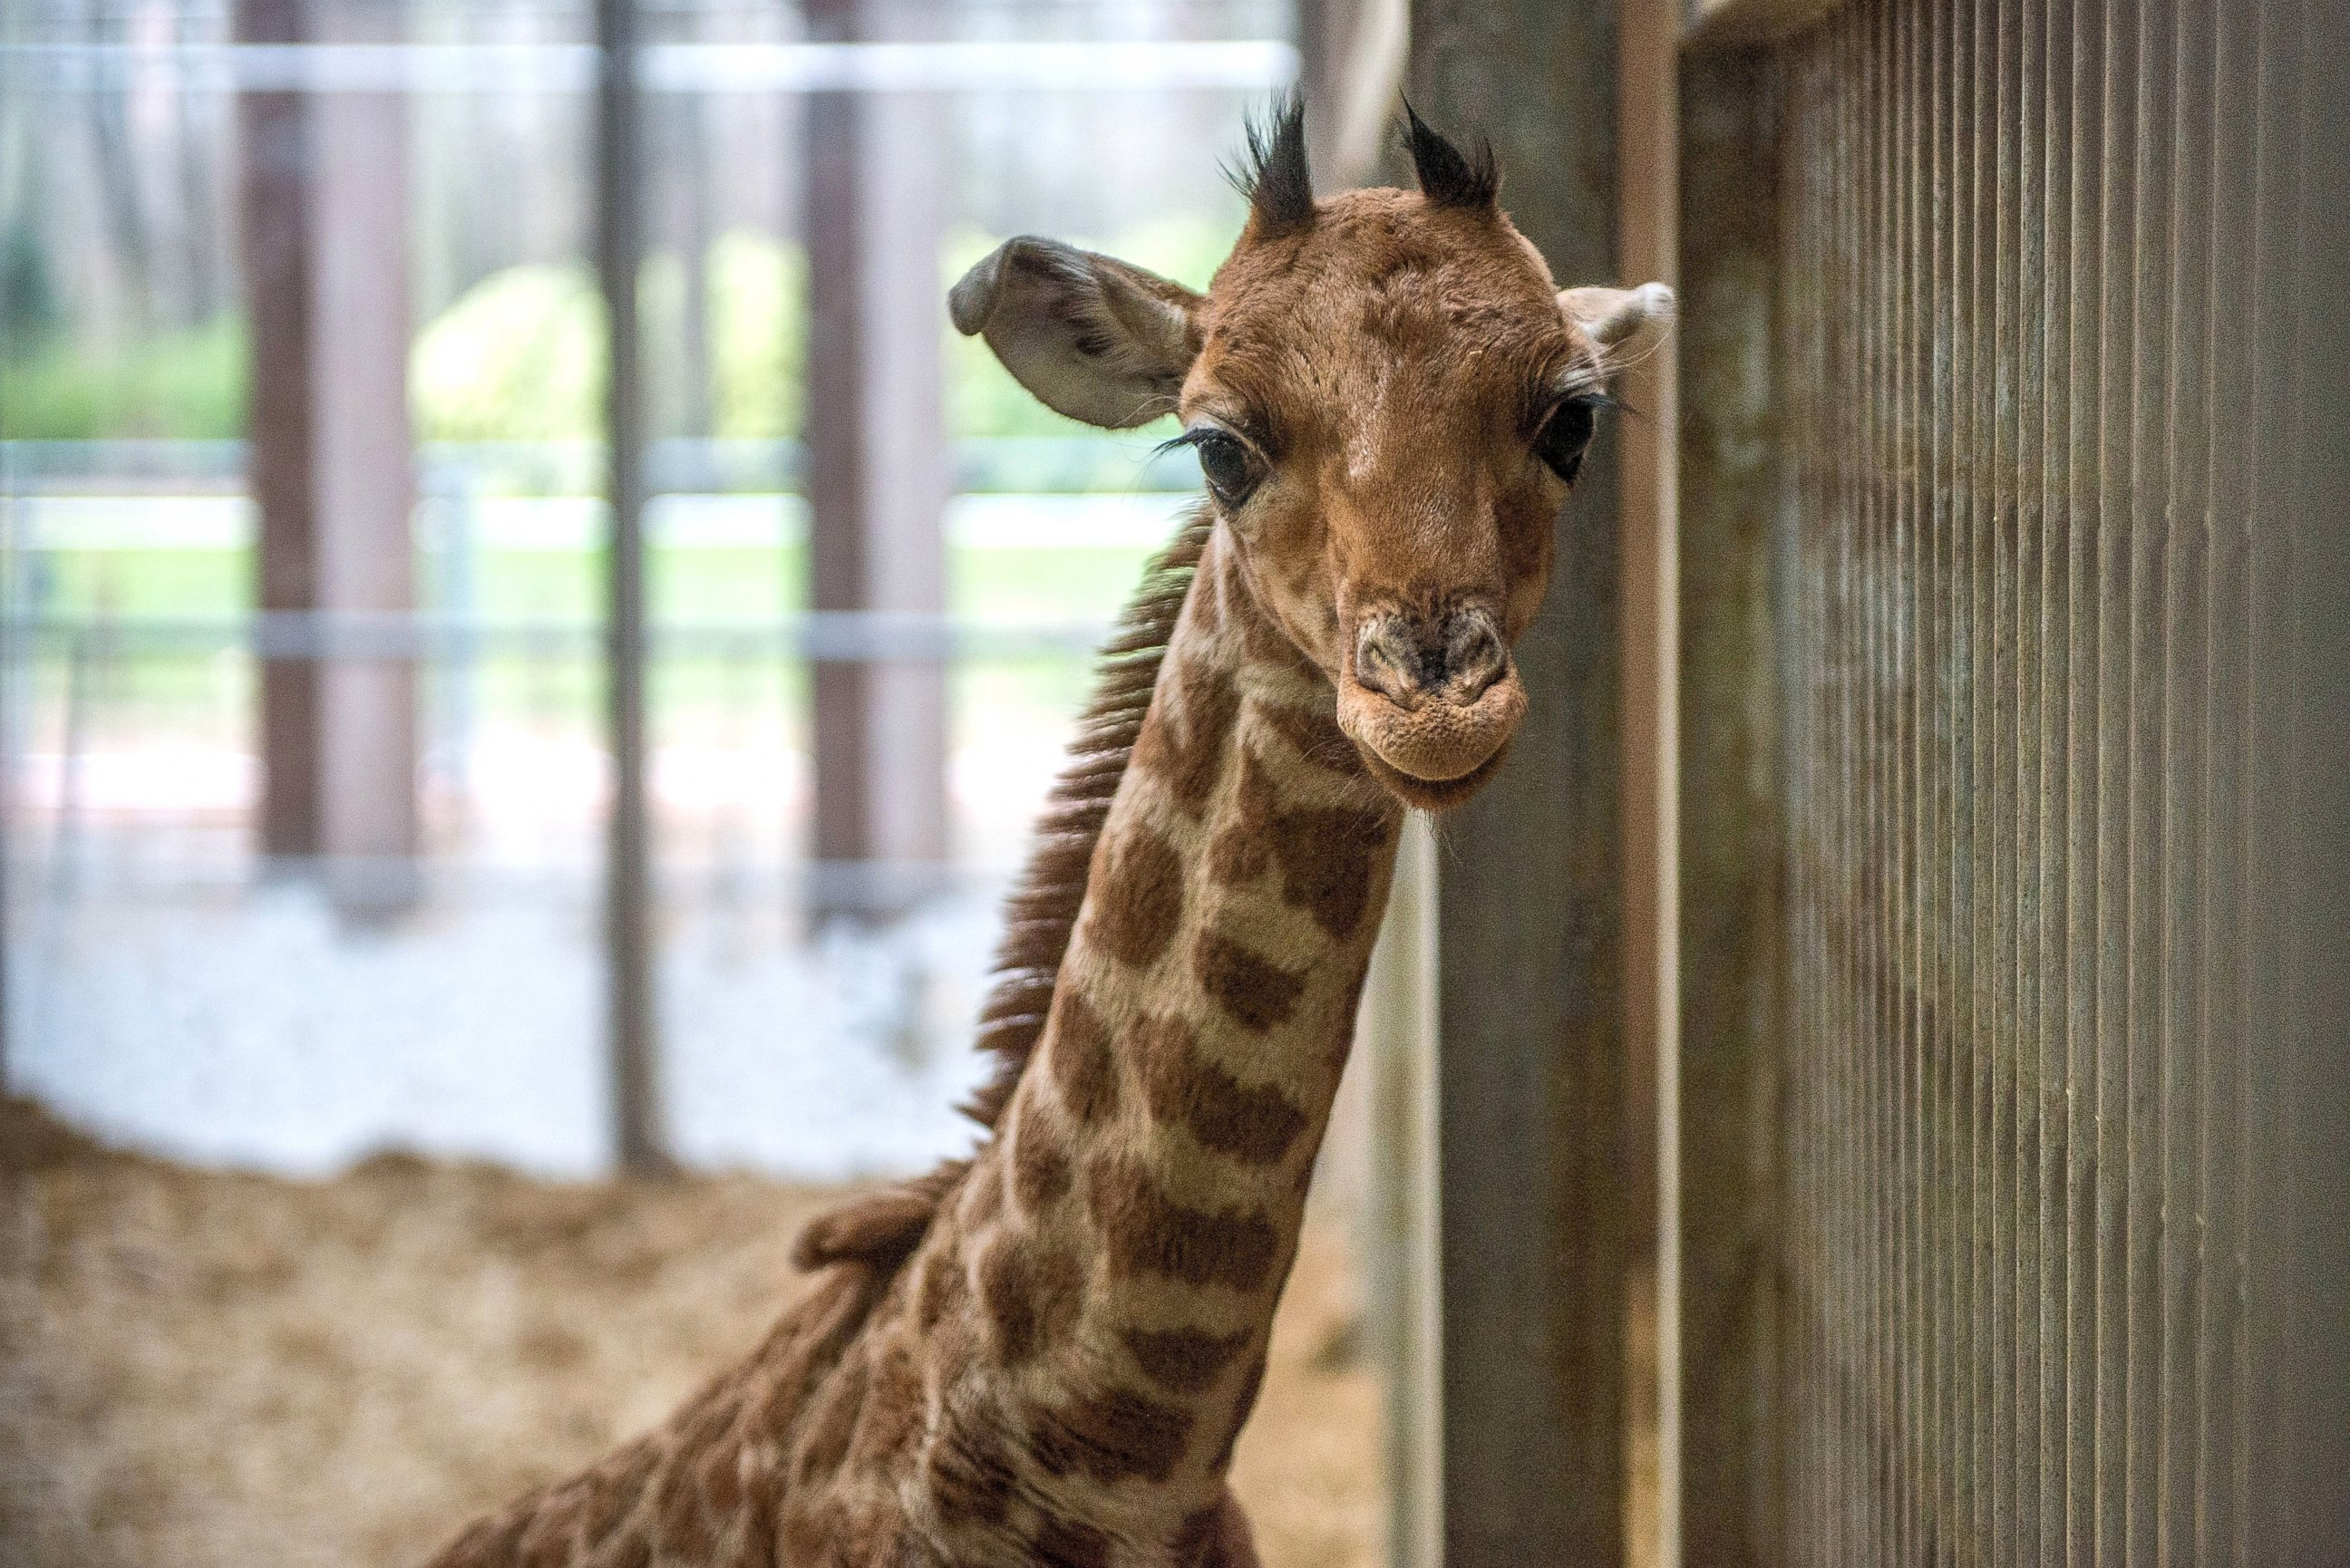 Baby Giraffe Sticks His Neck Out for the First Time